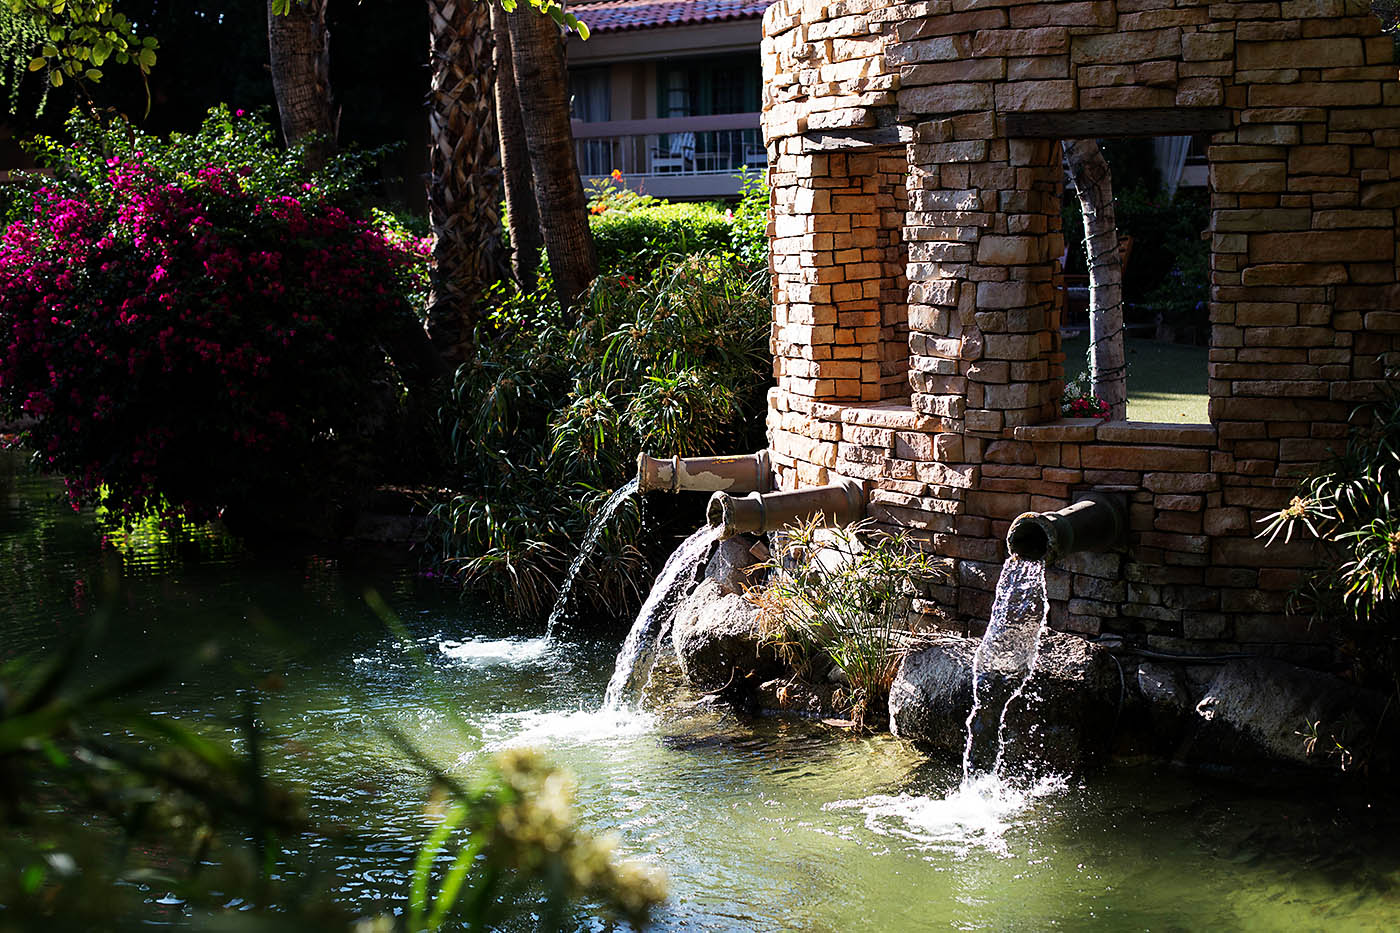 Firesky Resort & Spa in Scottsdale, AZ (plus a discount promo code!)